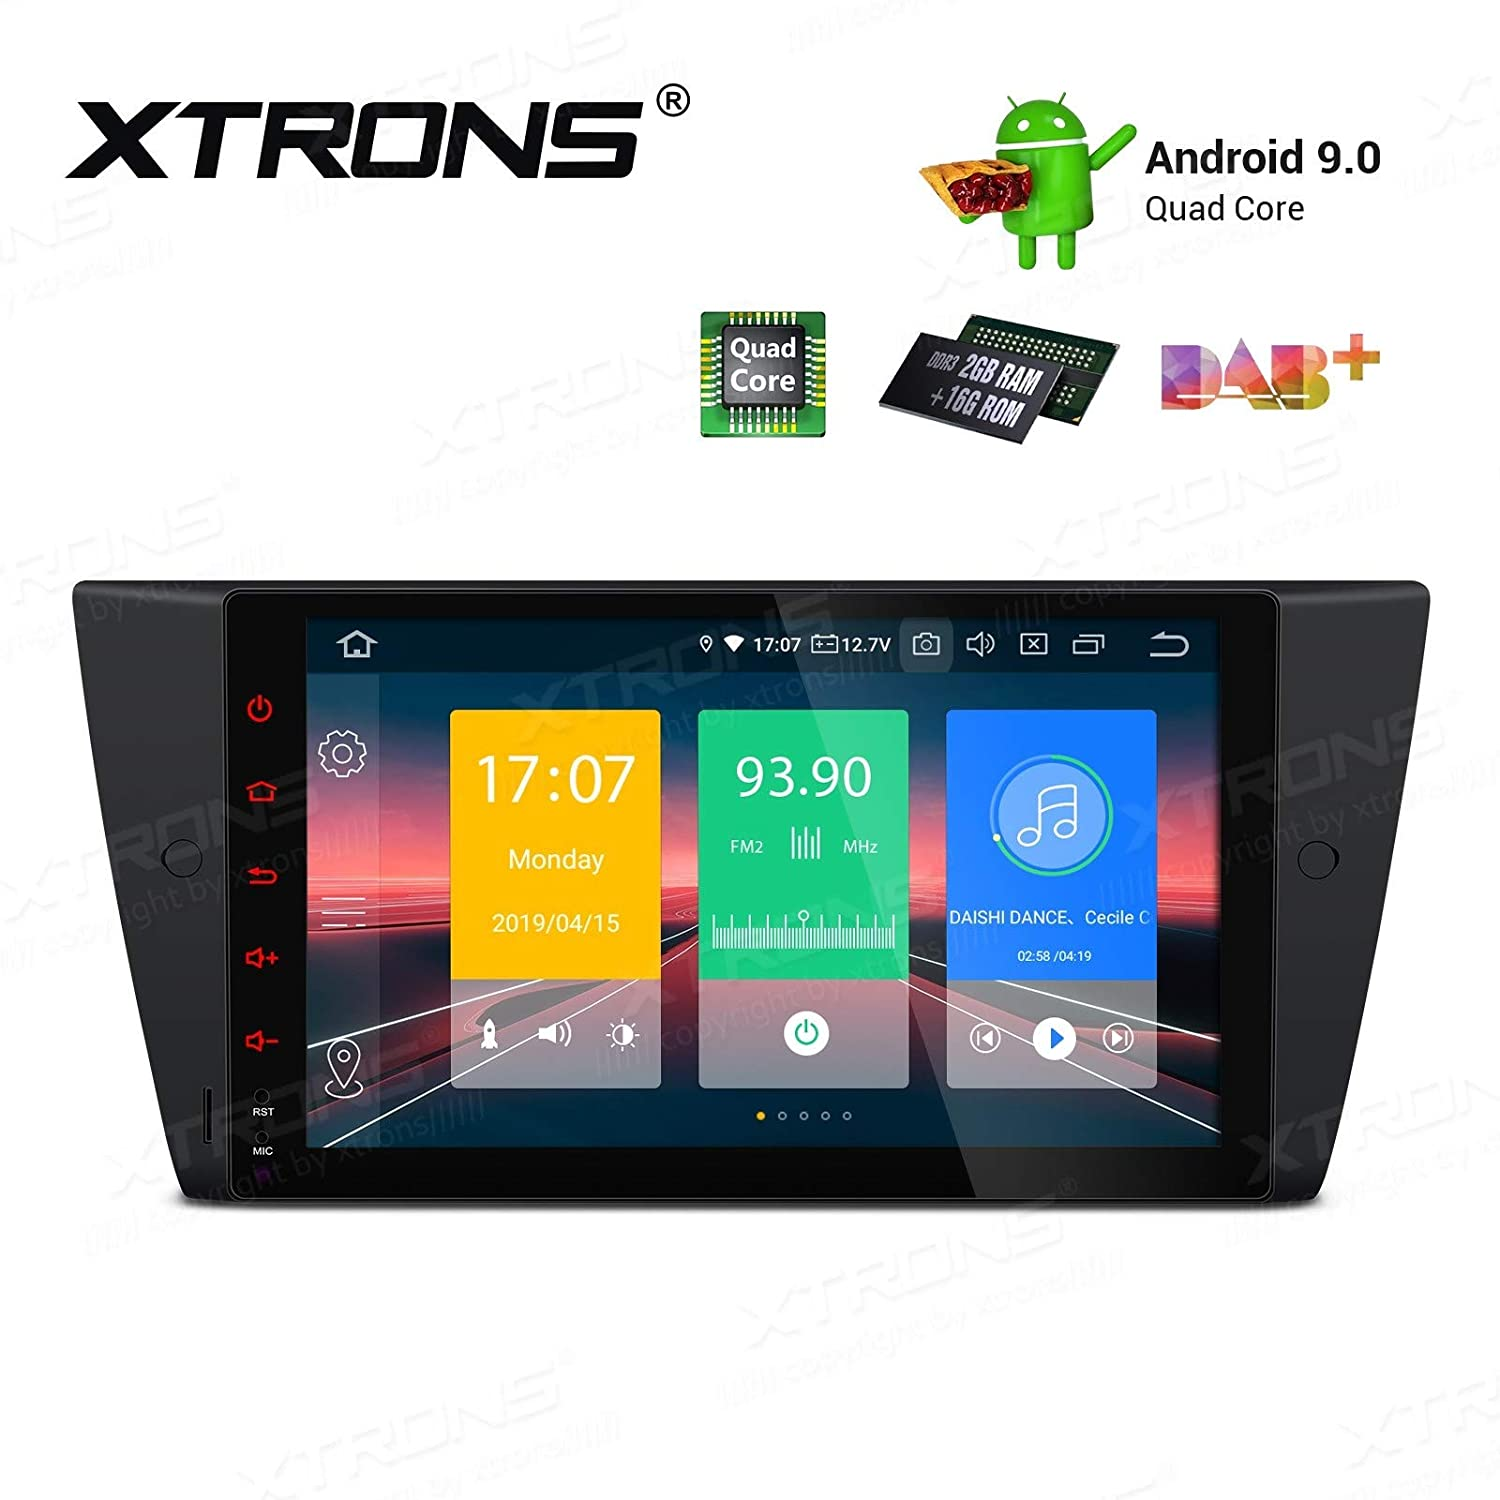 XTRONS 9 Autoradio mit Touch Screen Android 9.0 Quad Core Multimedia Player Autostereo unterst/ützt 4G WiFi Bluetooth Plug/&Play Design 2GB 16GB DAB /& OBD2 F/ÜR BMW E90 E91 E93